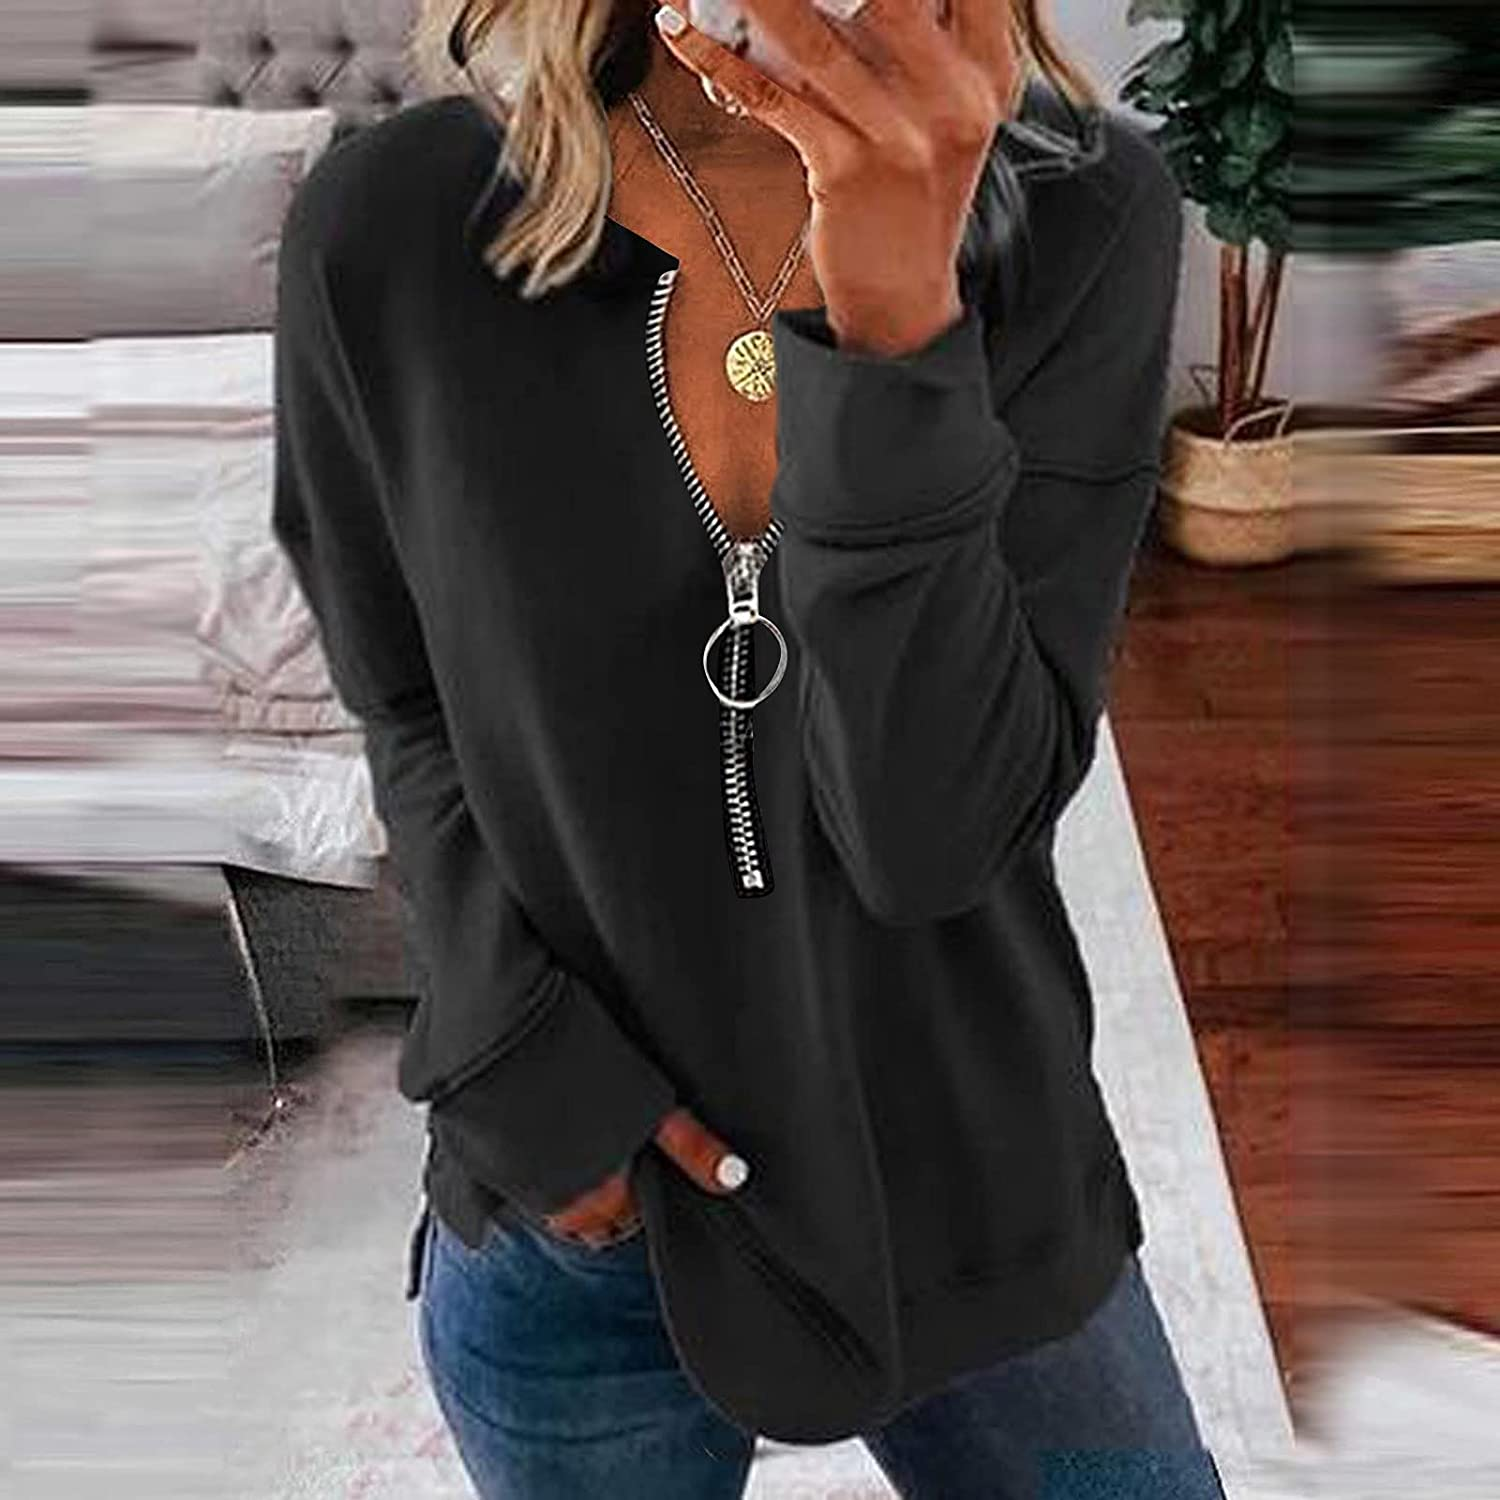 Womens Simple Long Sleeve T-Shirt Loose Comfortable Lapel V-Neck Zipper Tunic Tops Casual Pullover Henley Basic Blouse